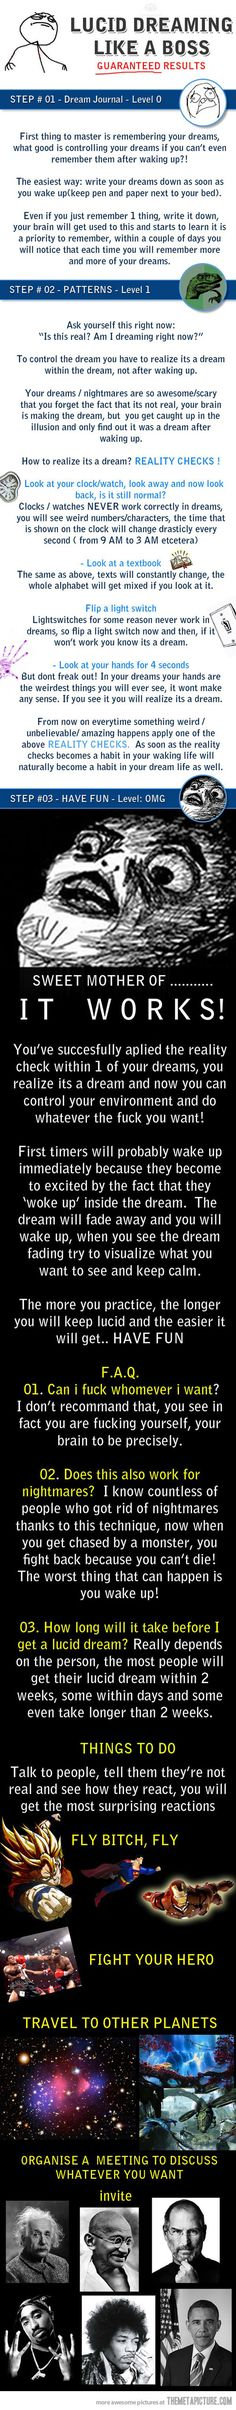 I've had lucid dreams before, but it seems to happen at random. This has a lot of helpful tips to take controle of your dreams more often. I want to try looking at my hands in dreams now. I have heard you never have 10 fingers in a dream.